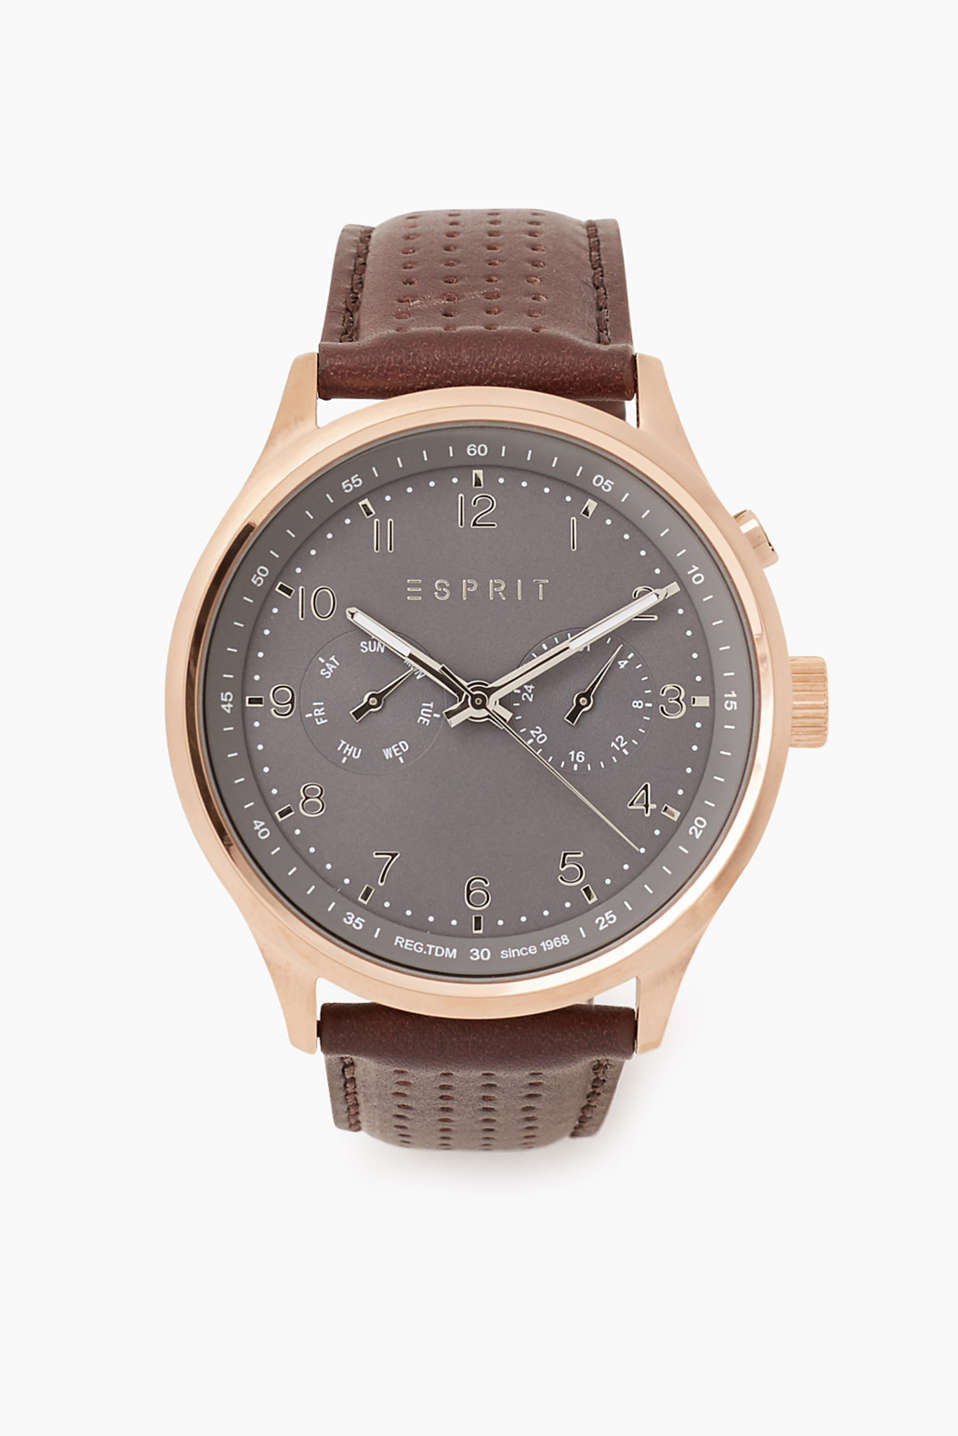 Chronograph with a stainless-steel casing, date display, stopwatch function and perforated leather strap